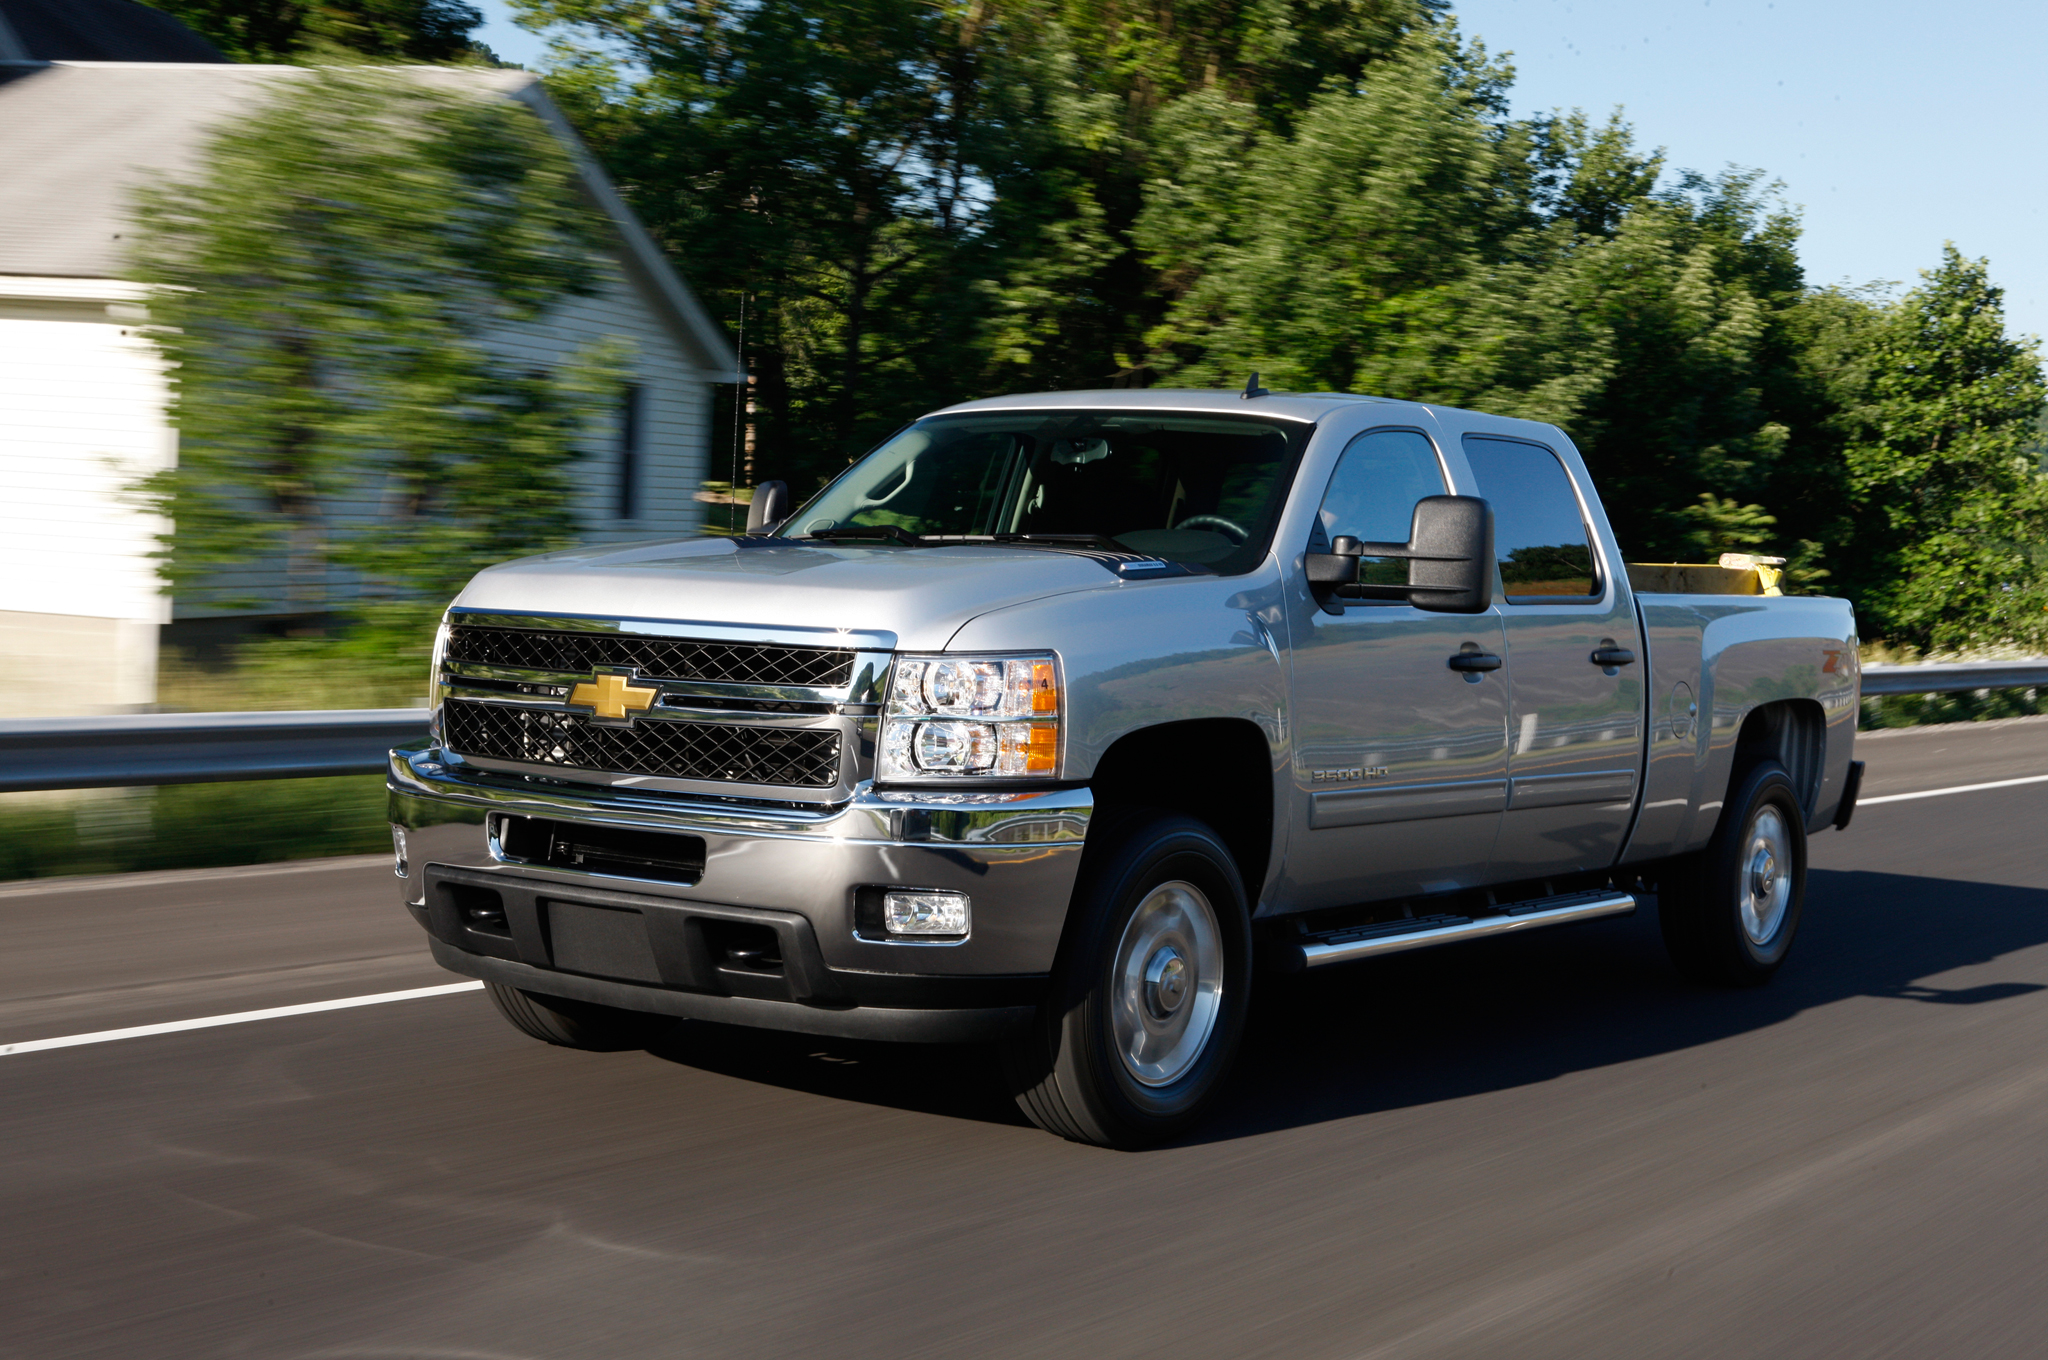 2011 Chevrolet Silverado 3500 HD Front Three Quarter In Motion Photo 9